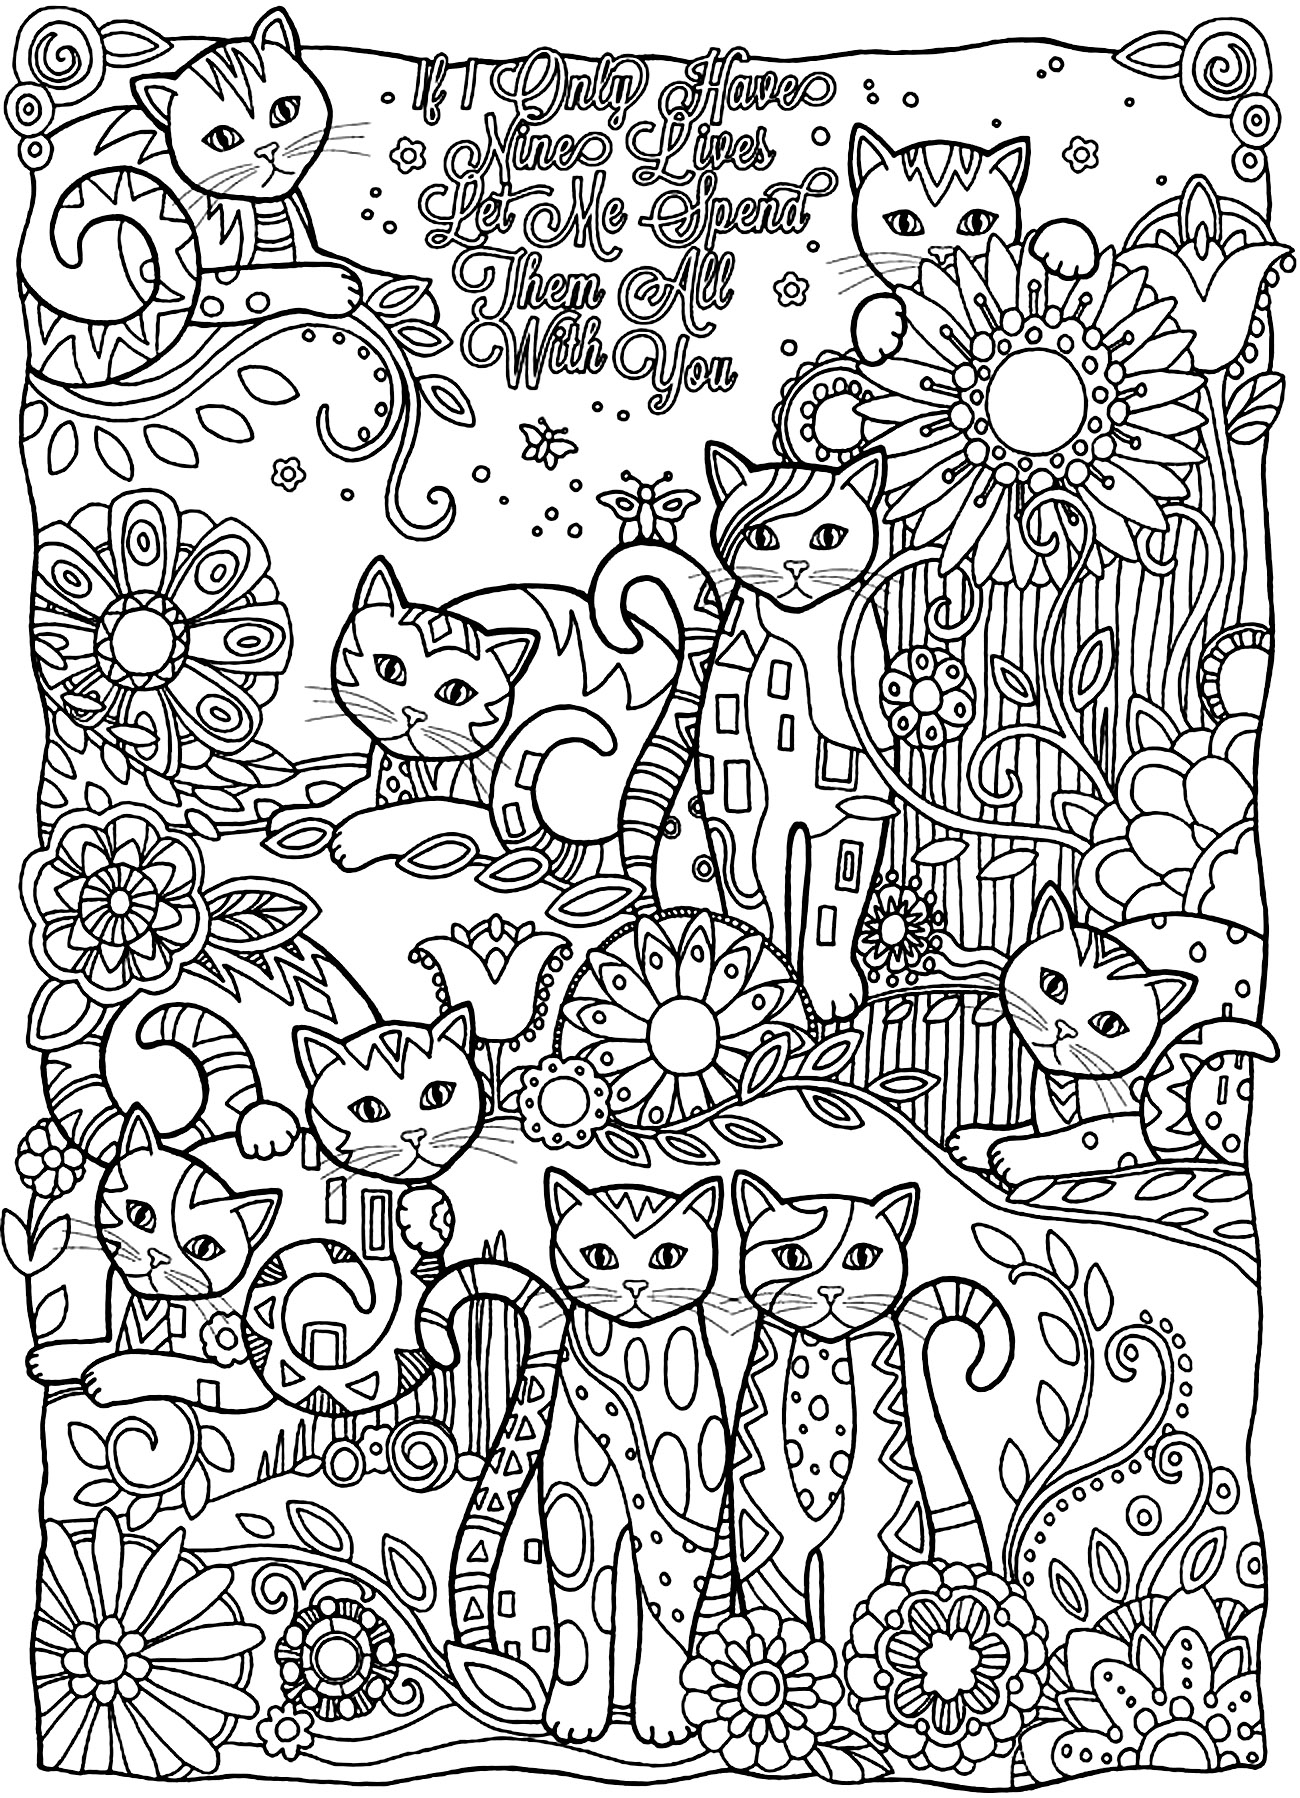 Printable Extremely Hard Coloring Pages for Adults – Color Bros to Print Of Snowflake Coloring Pages for Adults Coloring Pages Inspiring Printable